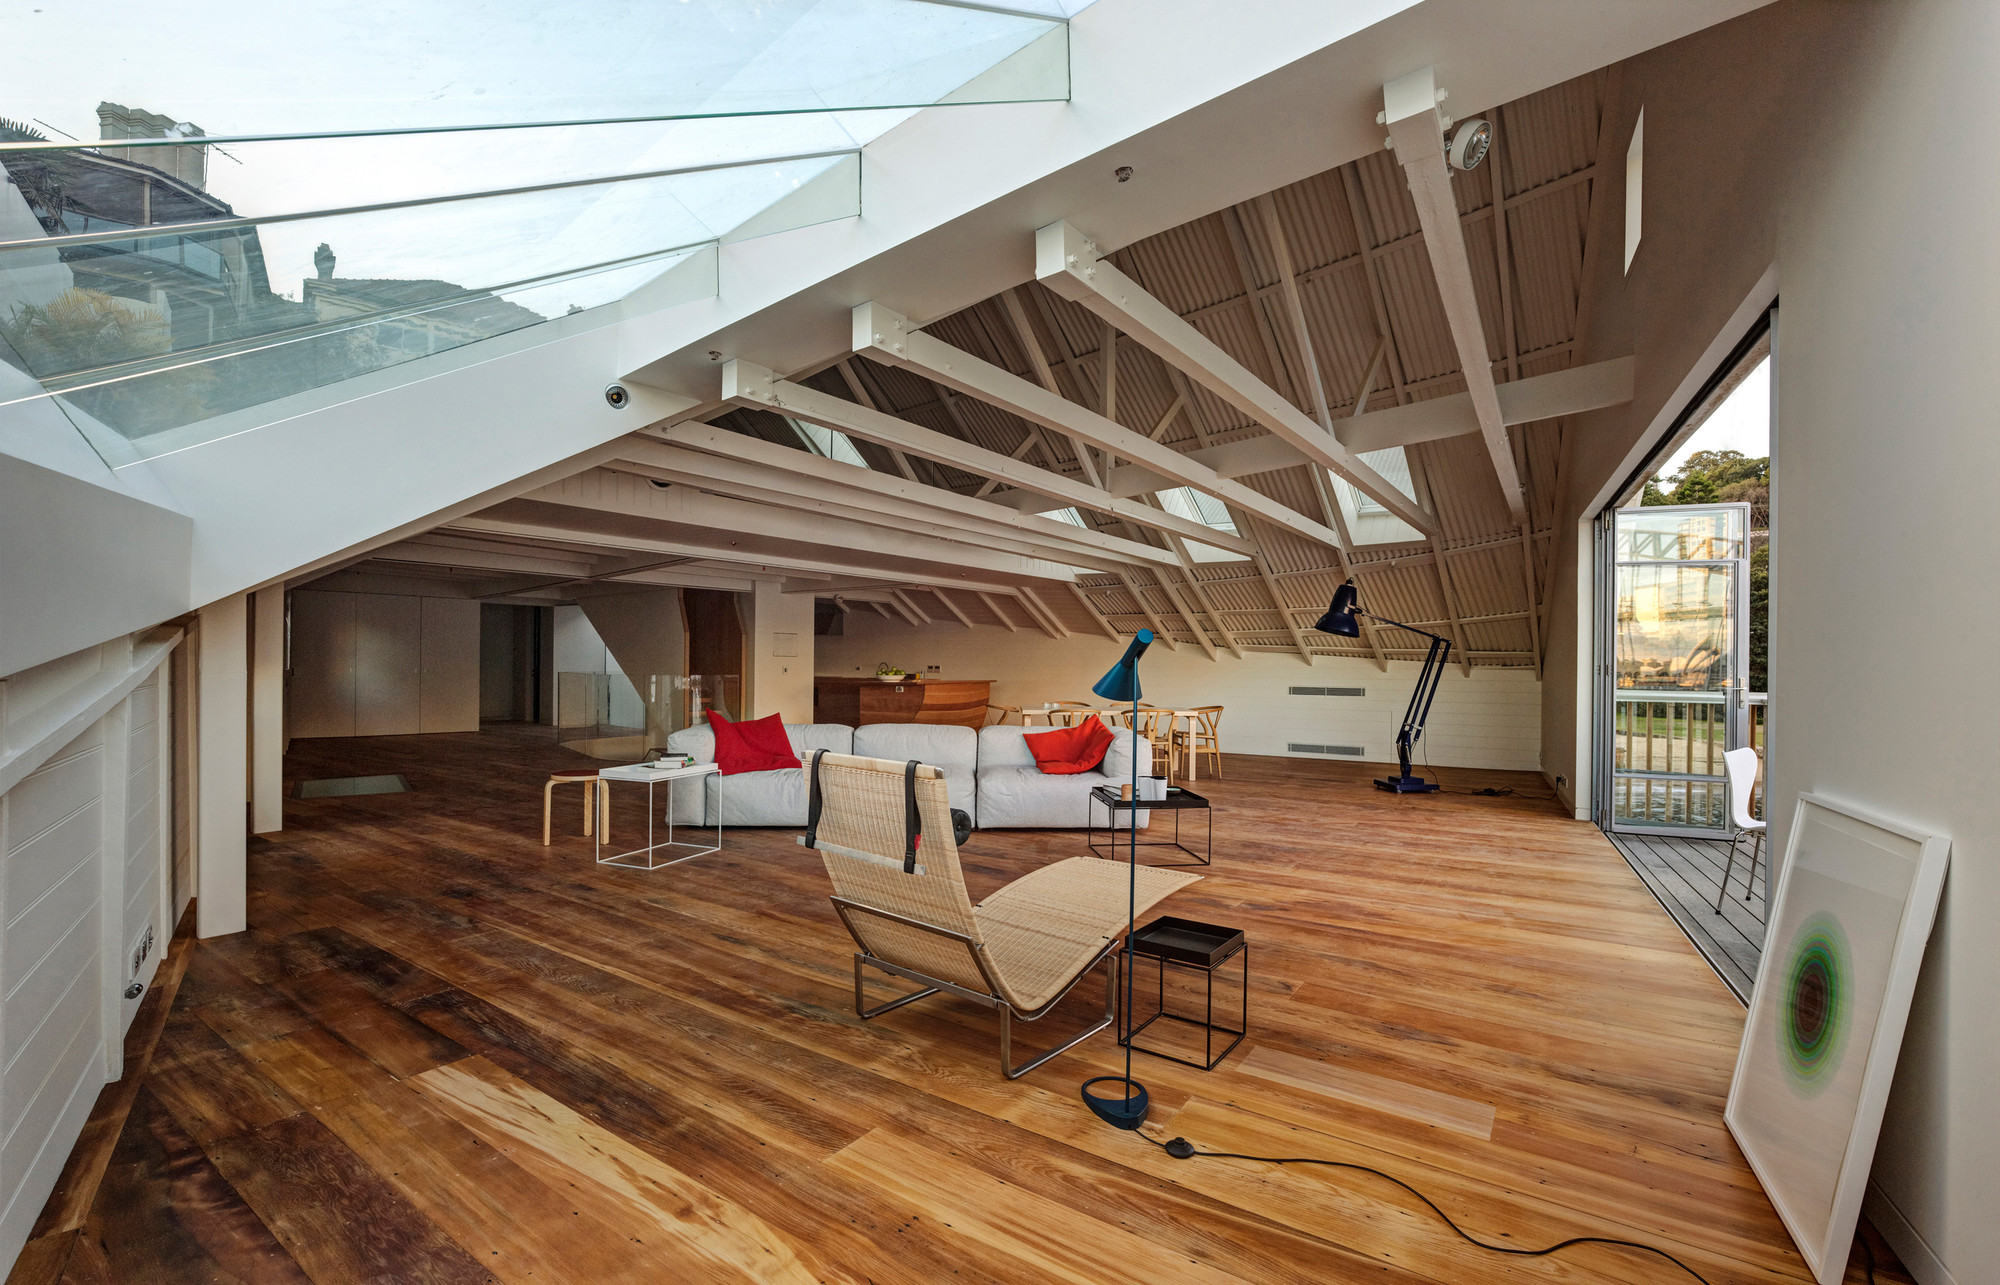 Lavender Bay Boatshed / Stephen Collier Architects, © Peter Bennetts